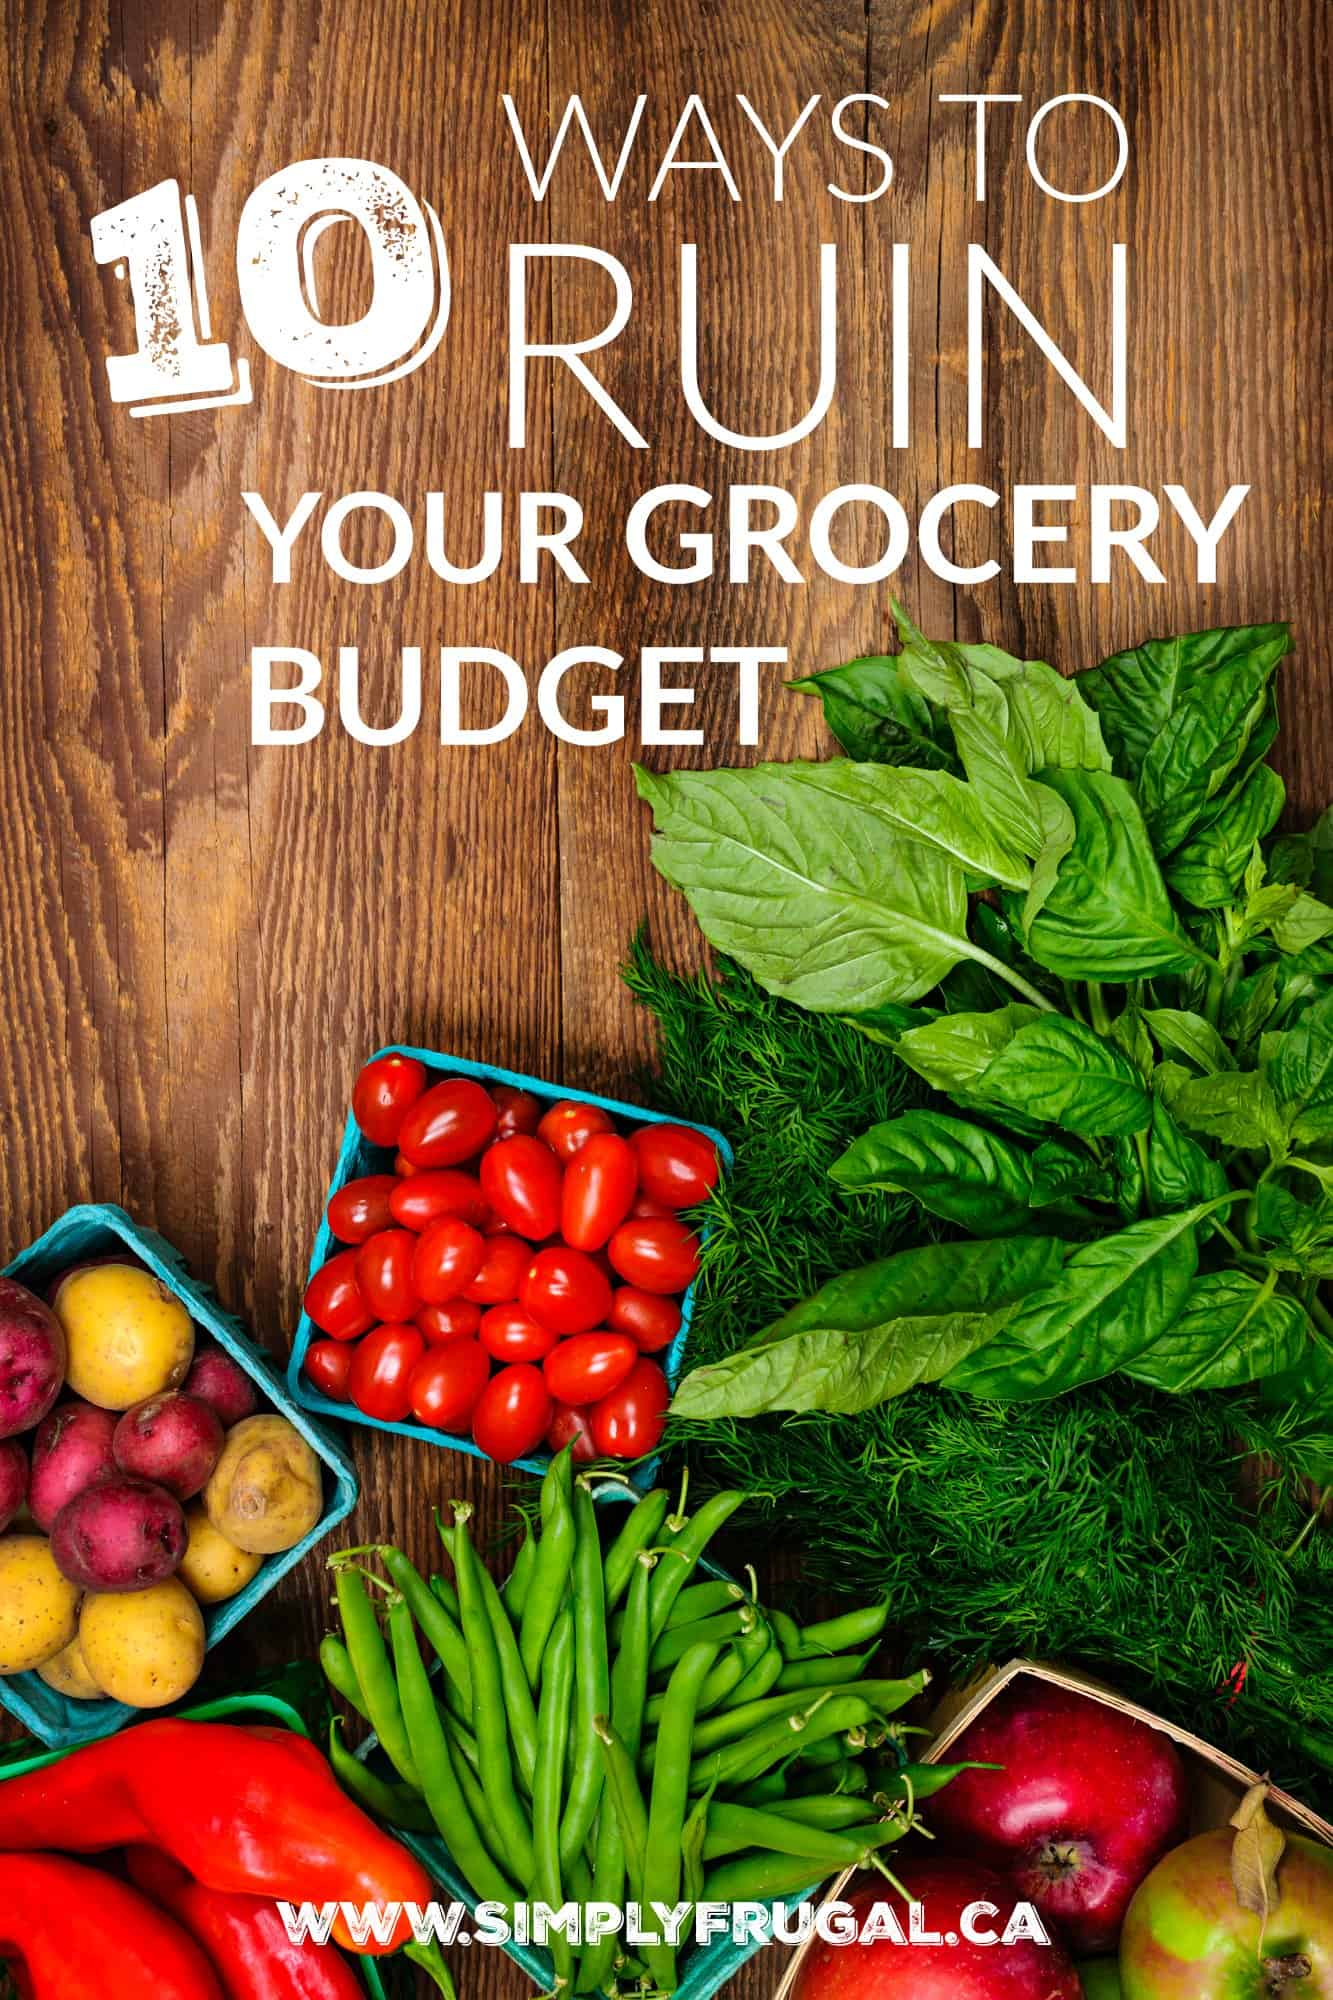 If staying on budget or lowering your grocery budget is your goal, you'll want to read on to learn how to fix your bad habits. Are you committing any of these grocery shopping faux pas?